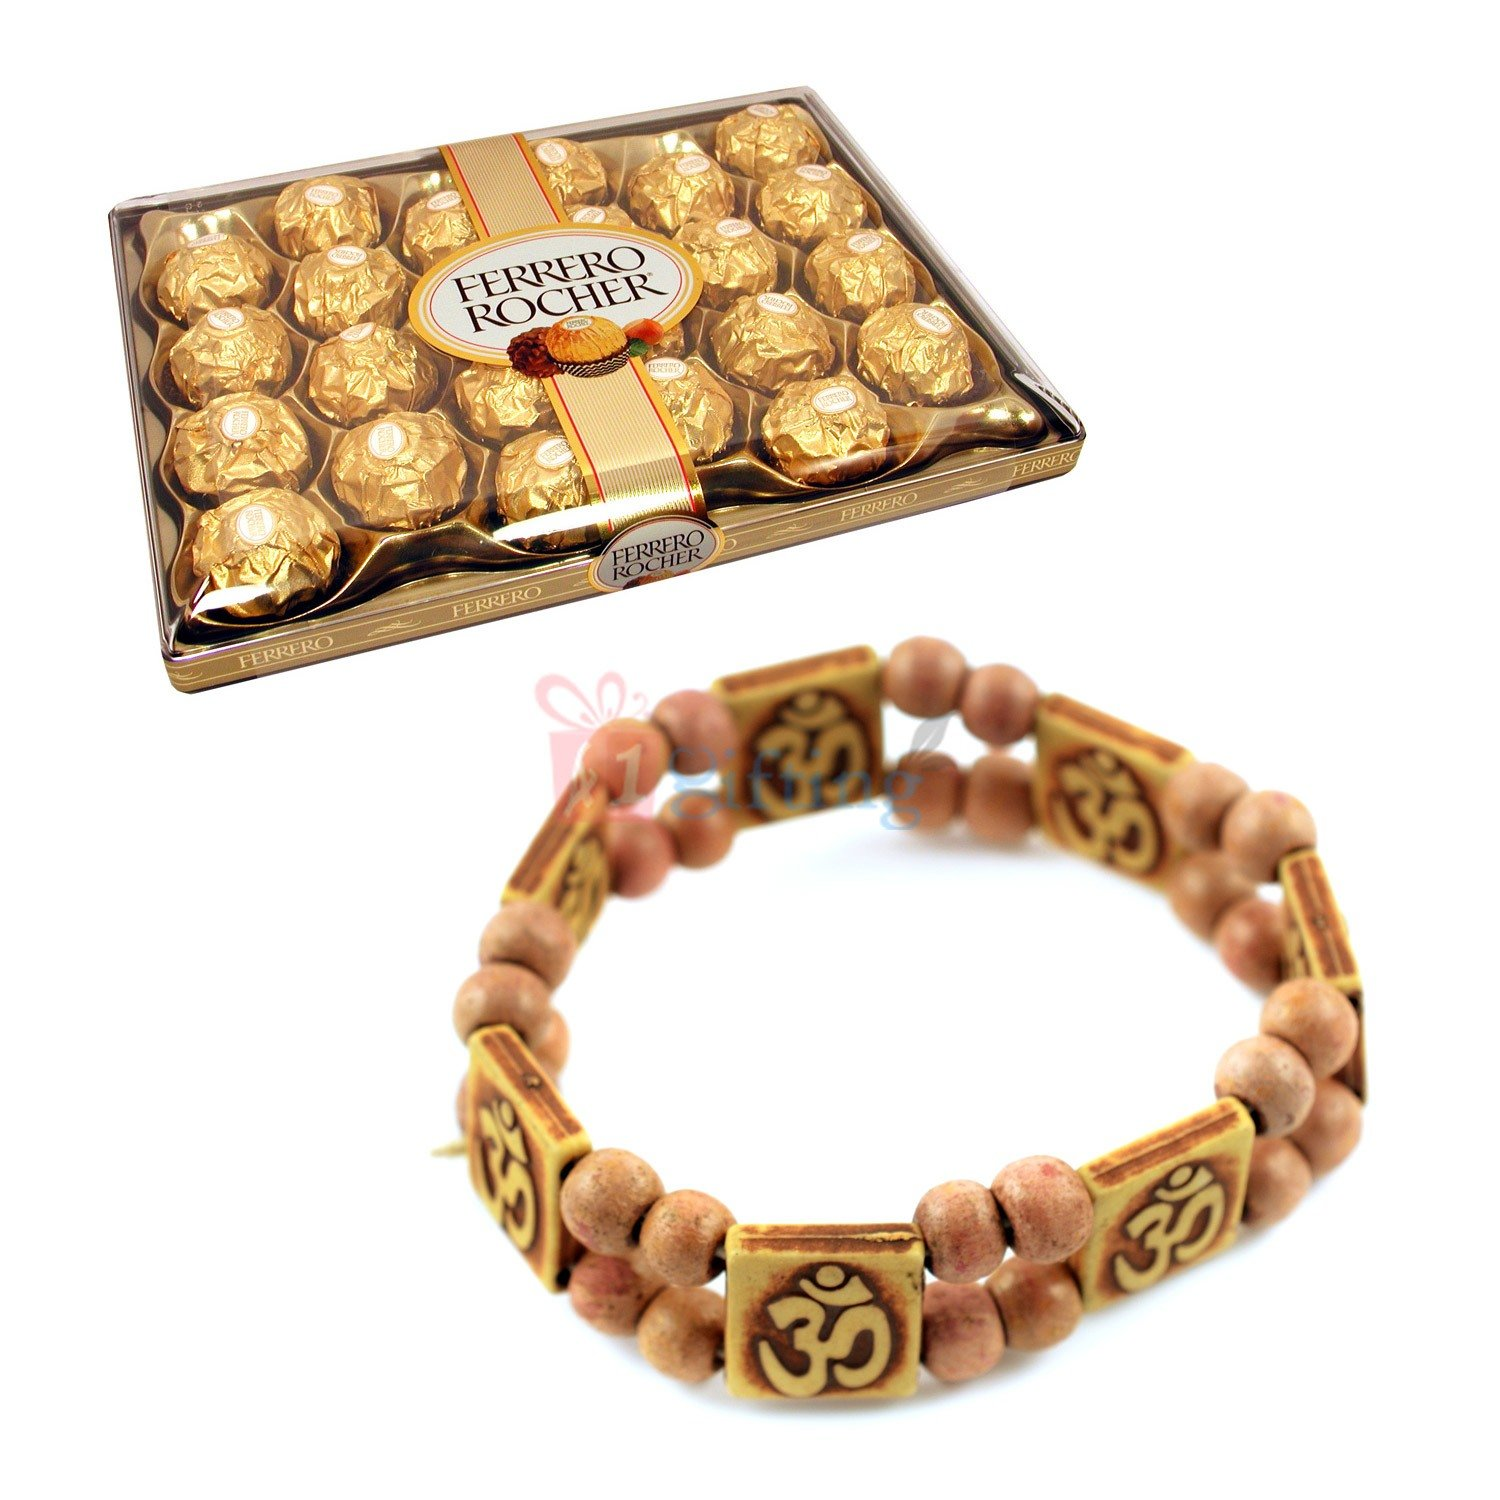 Om Bracelet with Ferrero Rocher 24 Pcs Chocolates